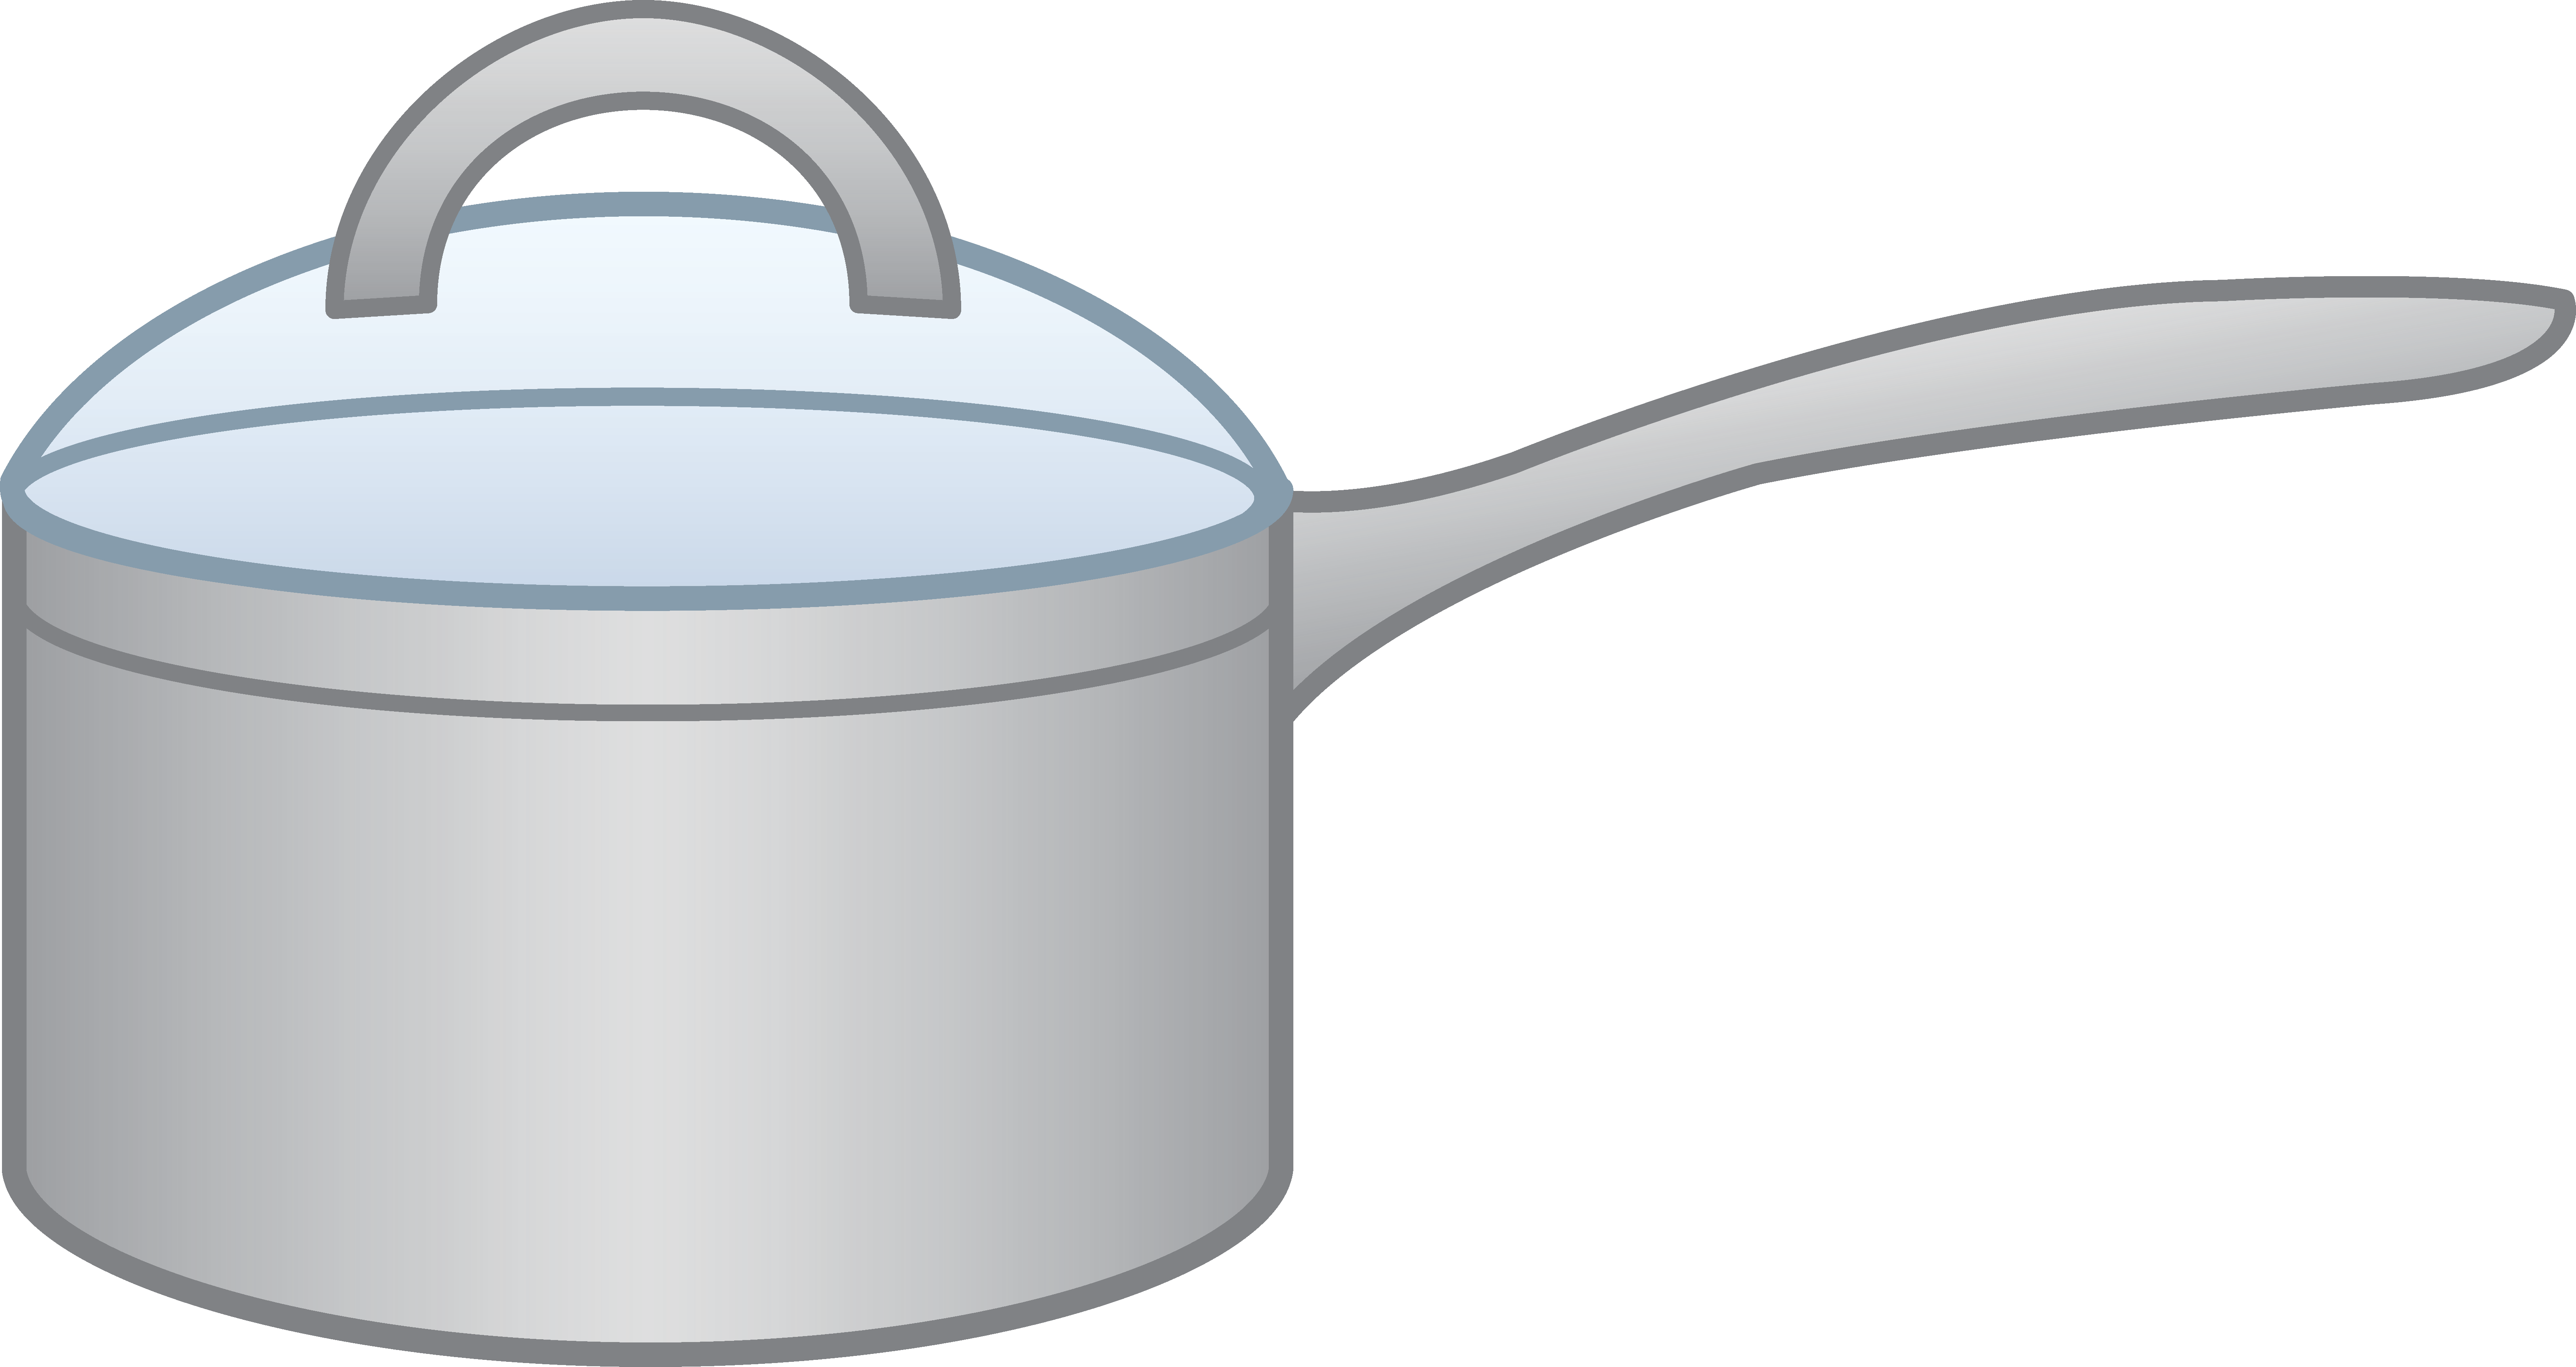 Cooking Pot Drawing At Getdrawings Free Download